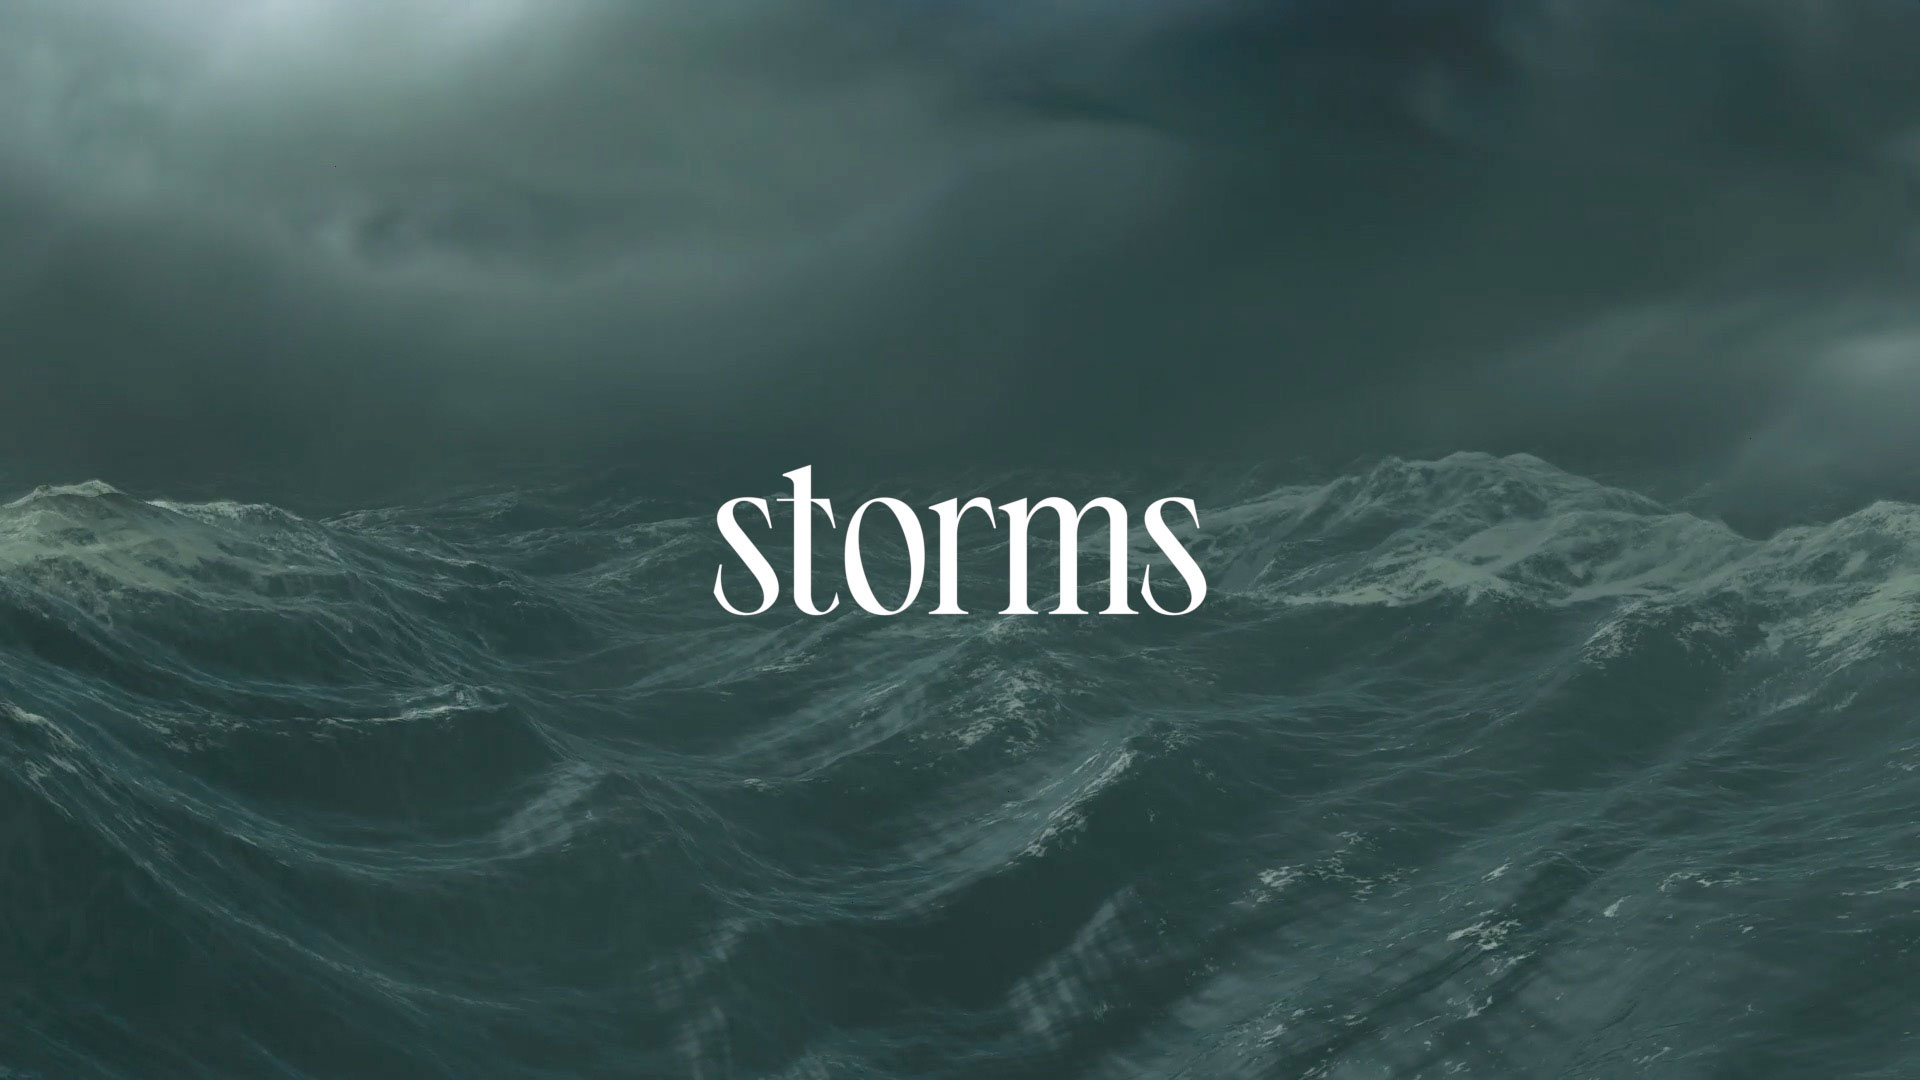 Series: Storms